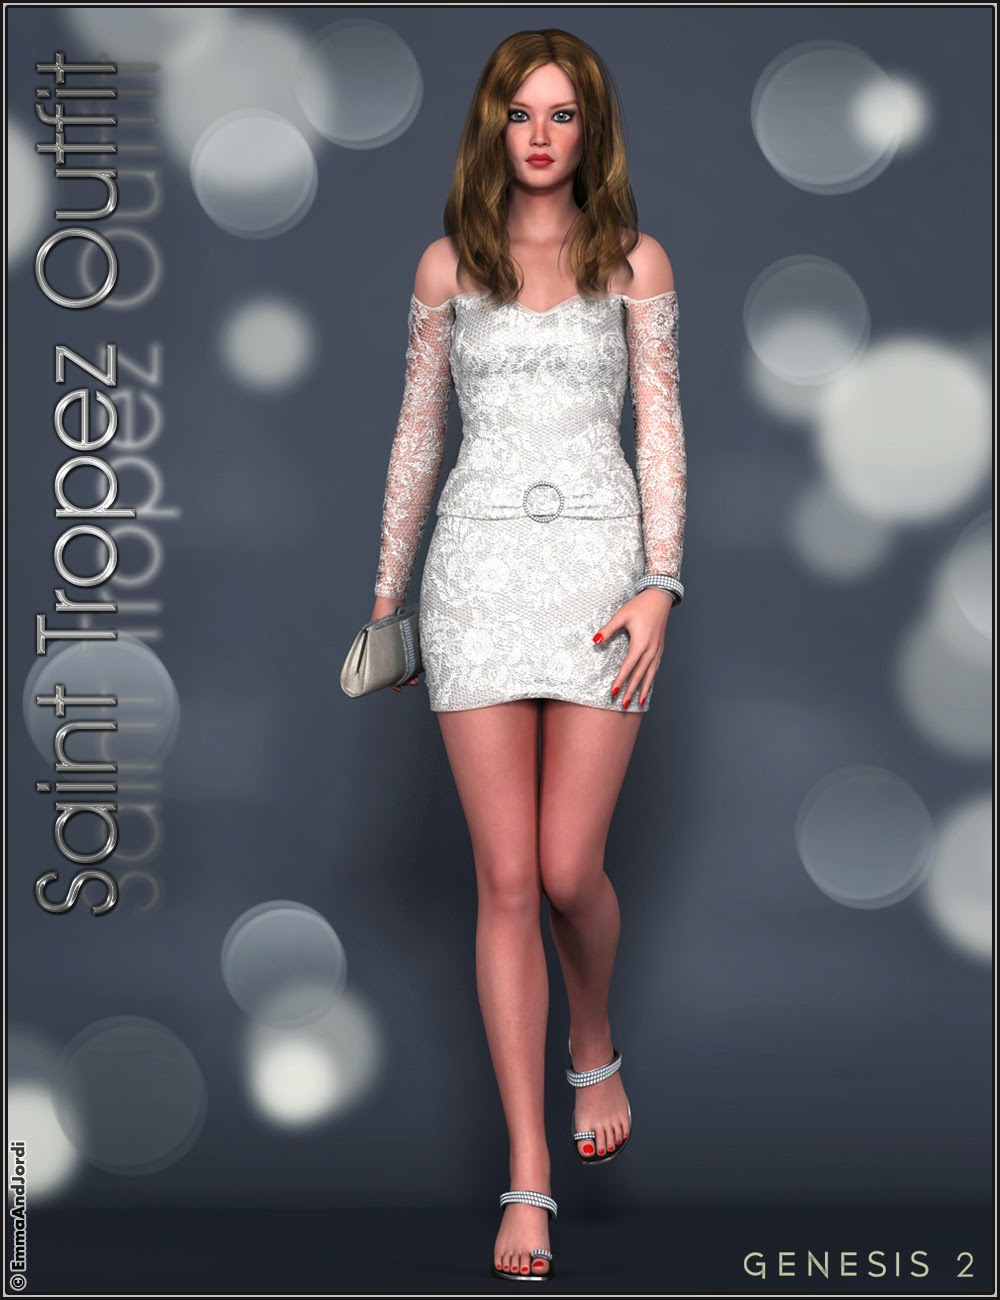 http://www.daz3d.com/saint-tropez-outfit-and-accessories